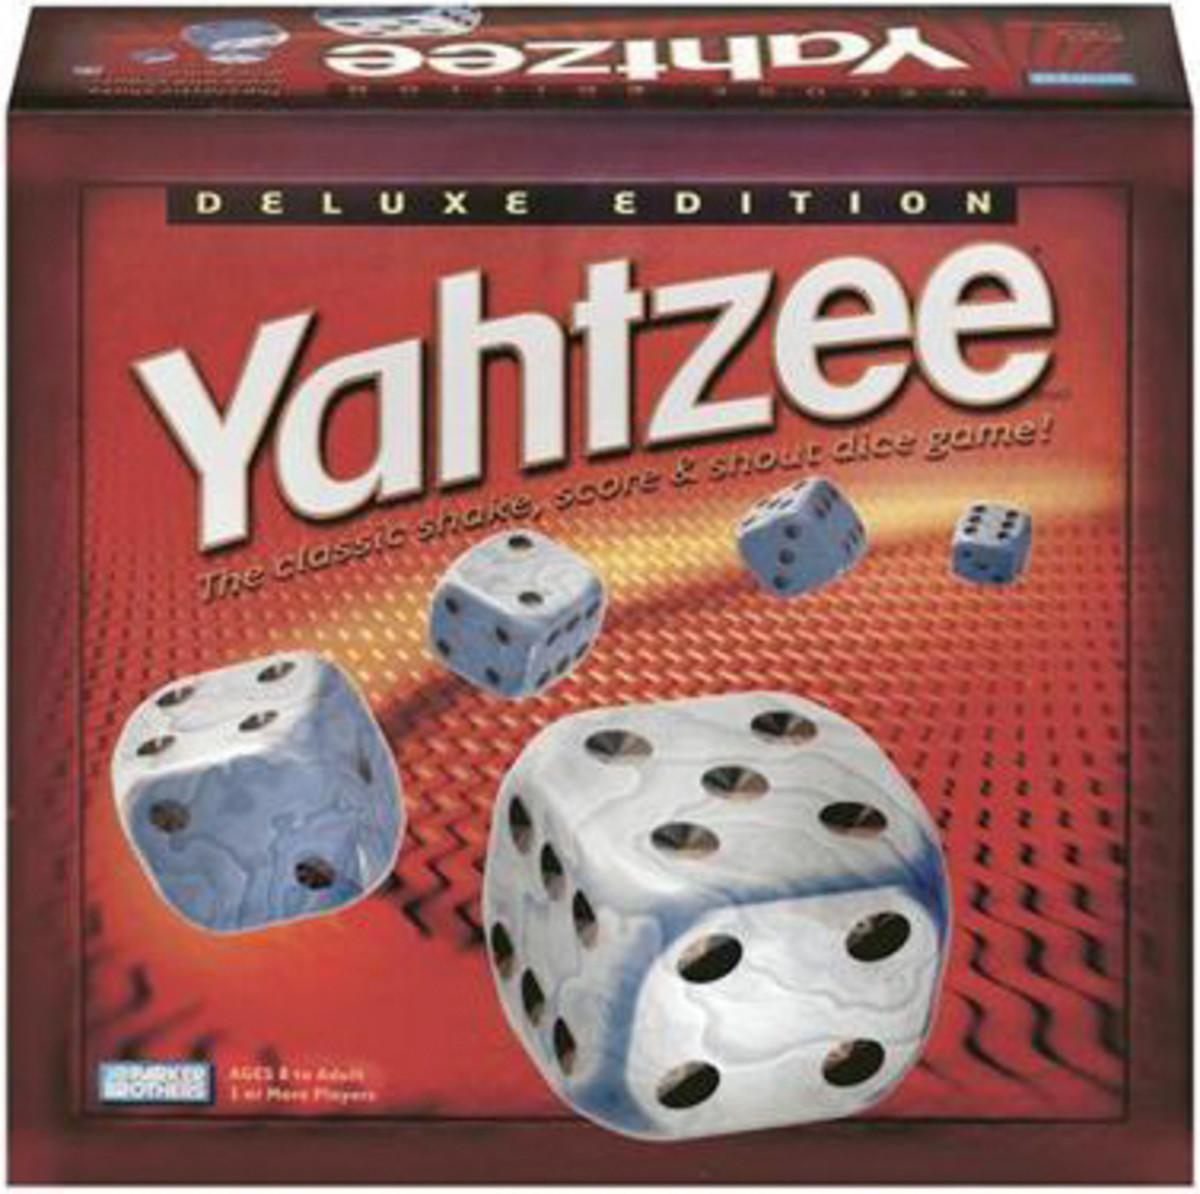 Yahtzee is a Parker Brothers game.